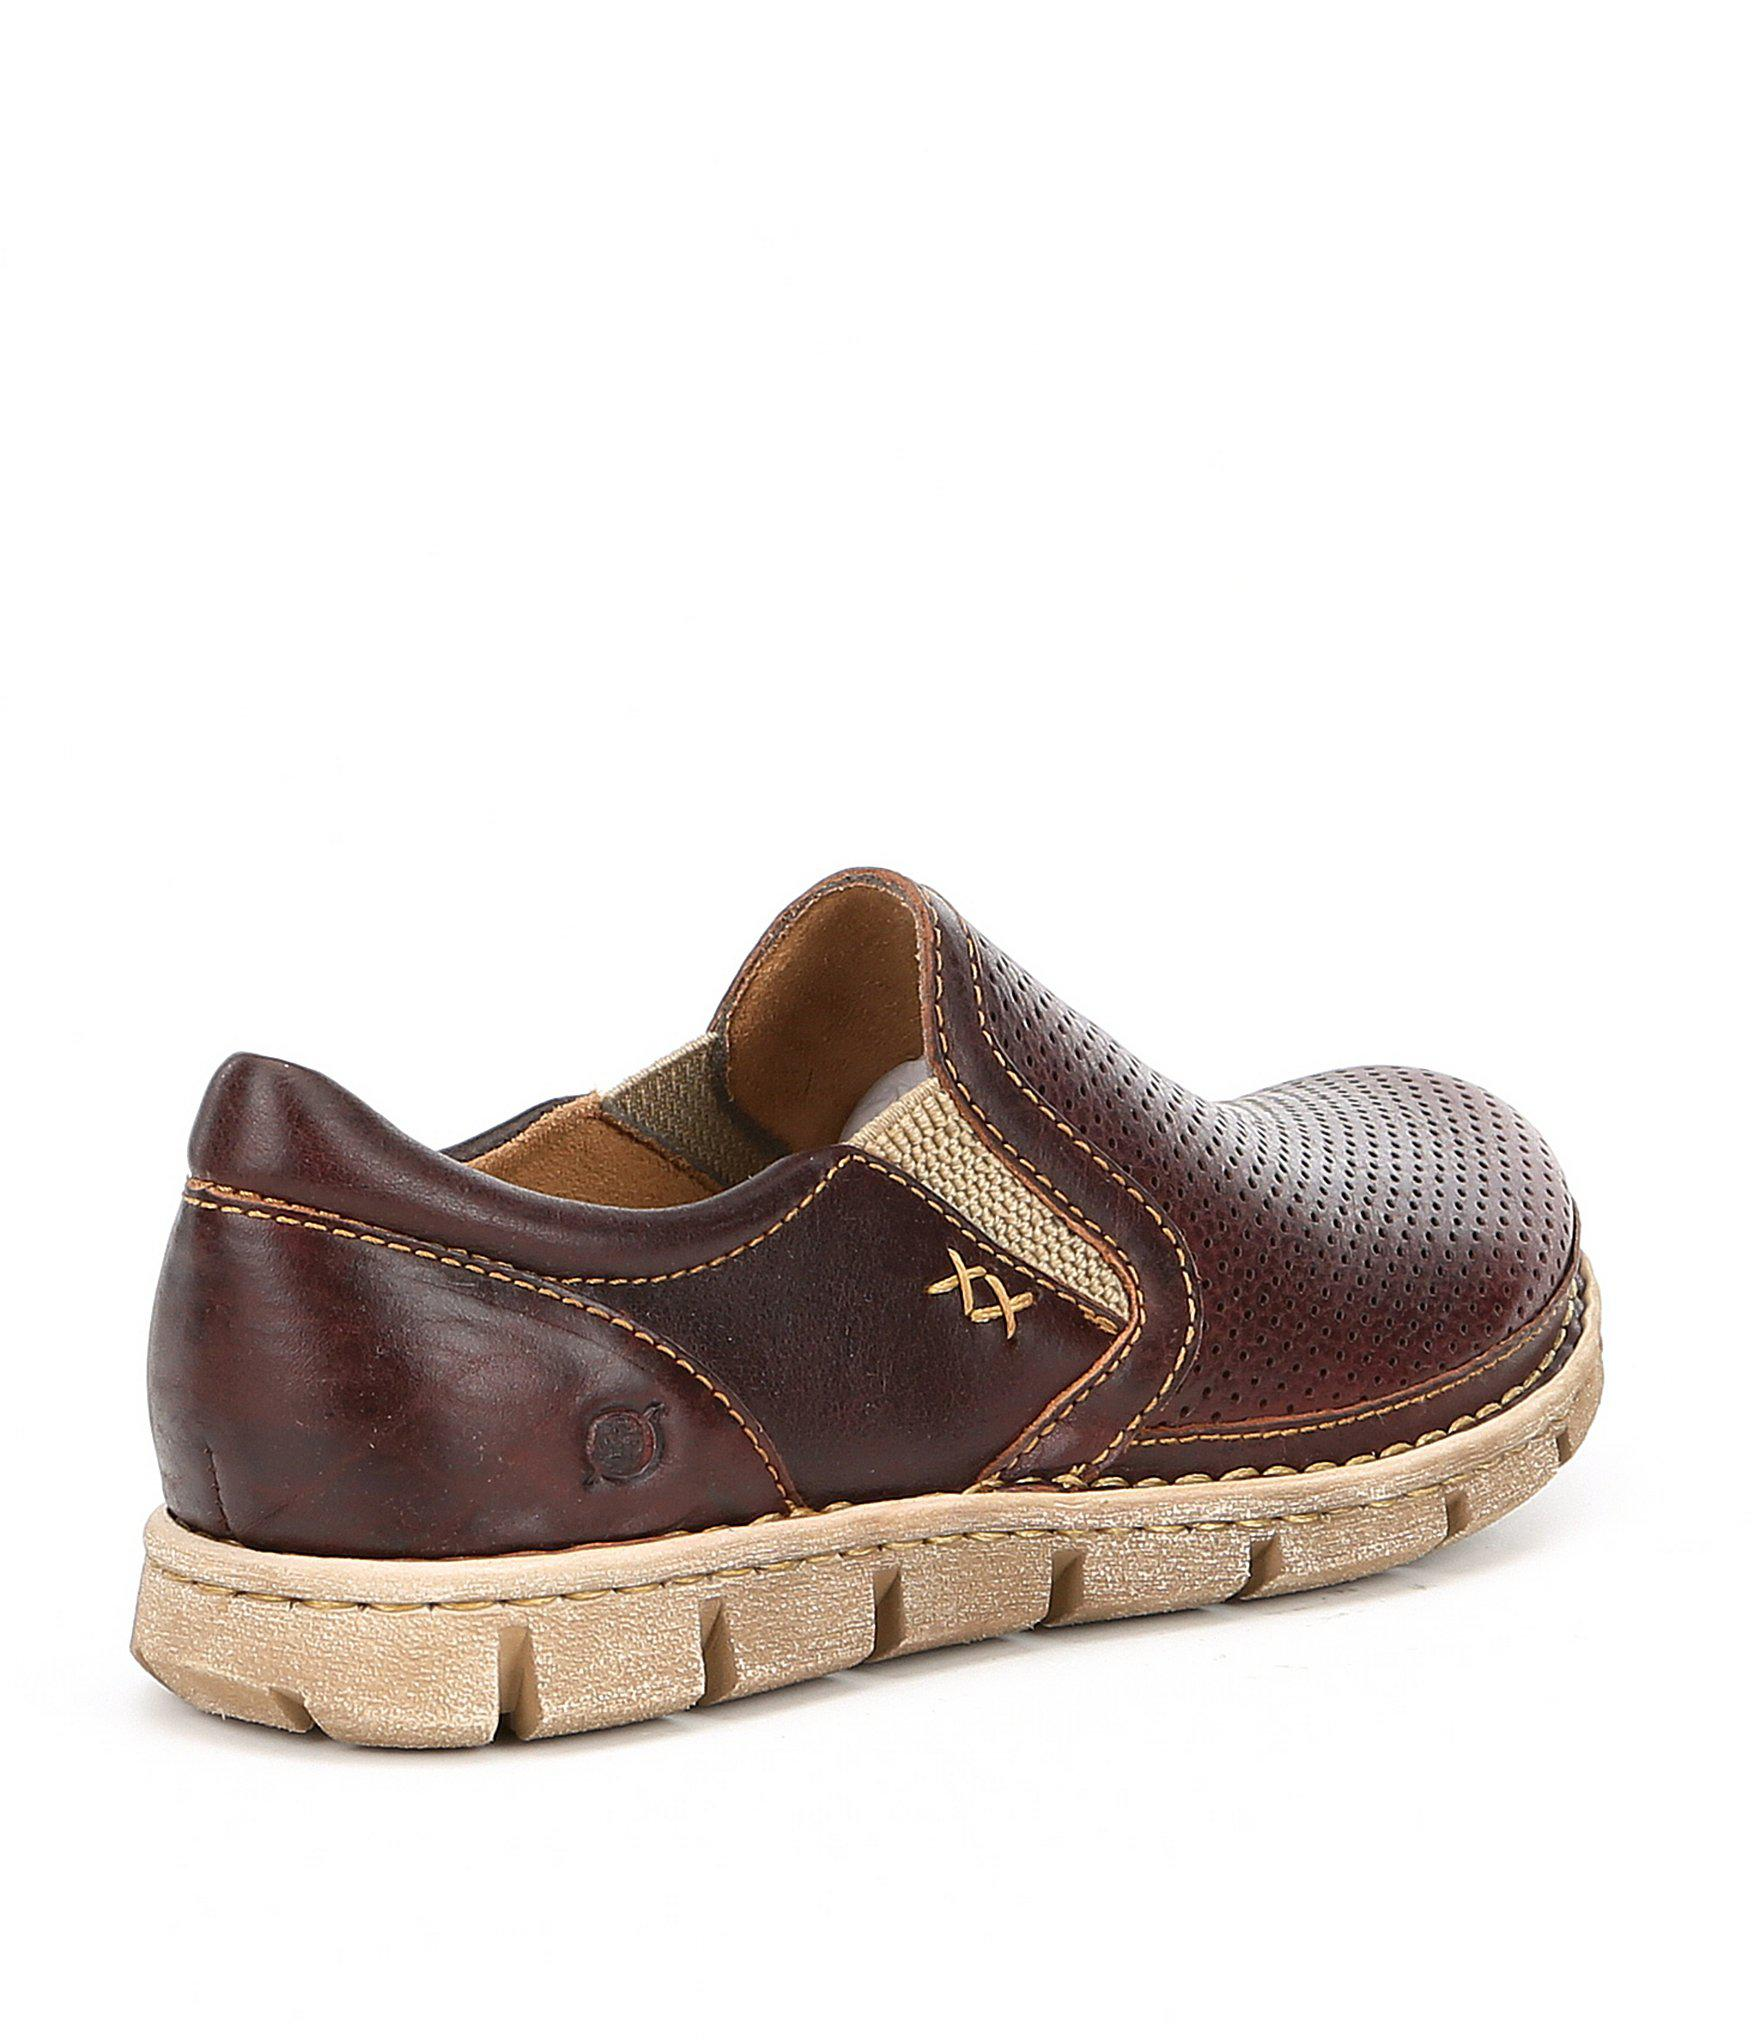 6cba8a996f306 Born - Brown Men s Sawyer Perforated Slip-ons for Men - Lyst. View  fullscreen